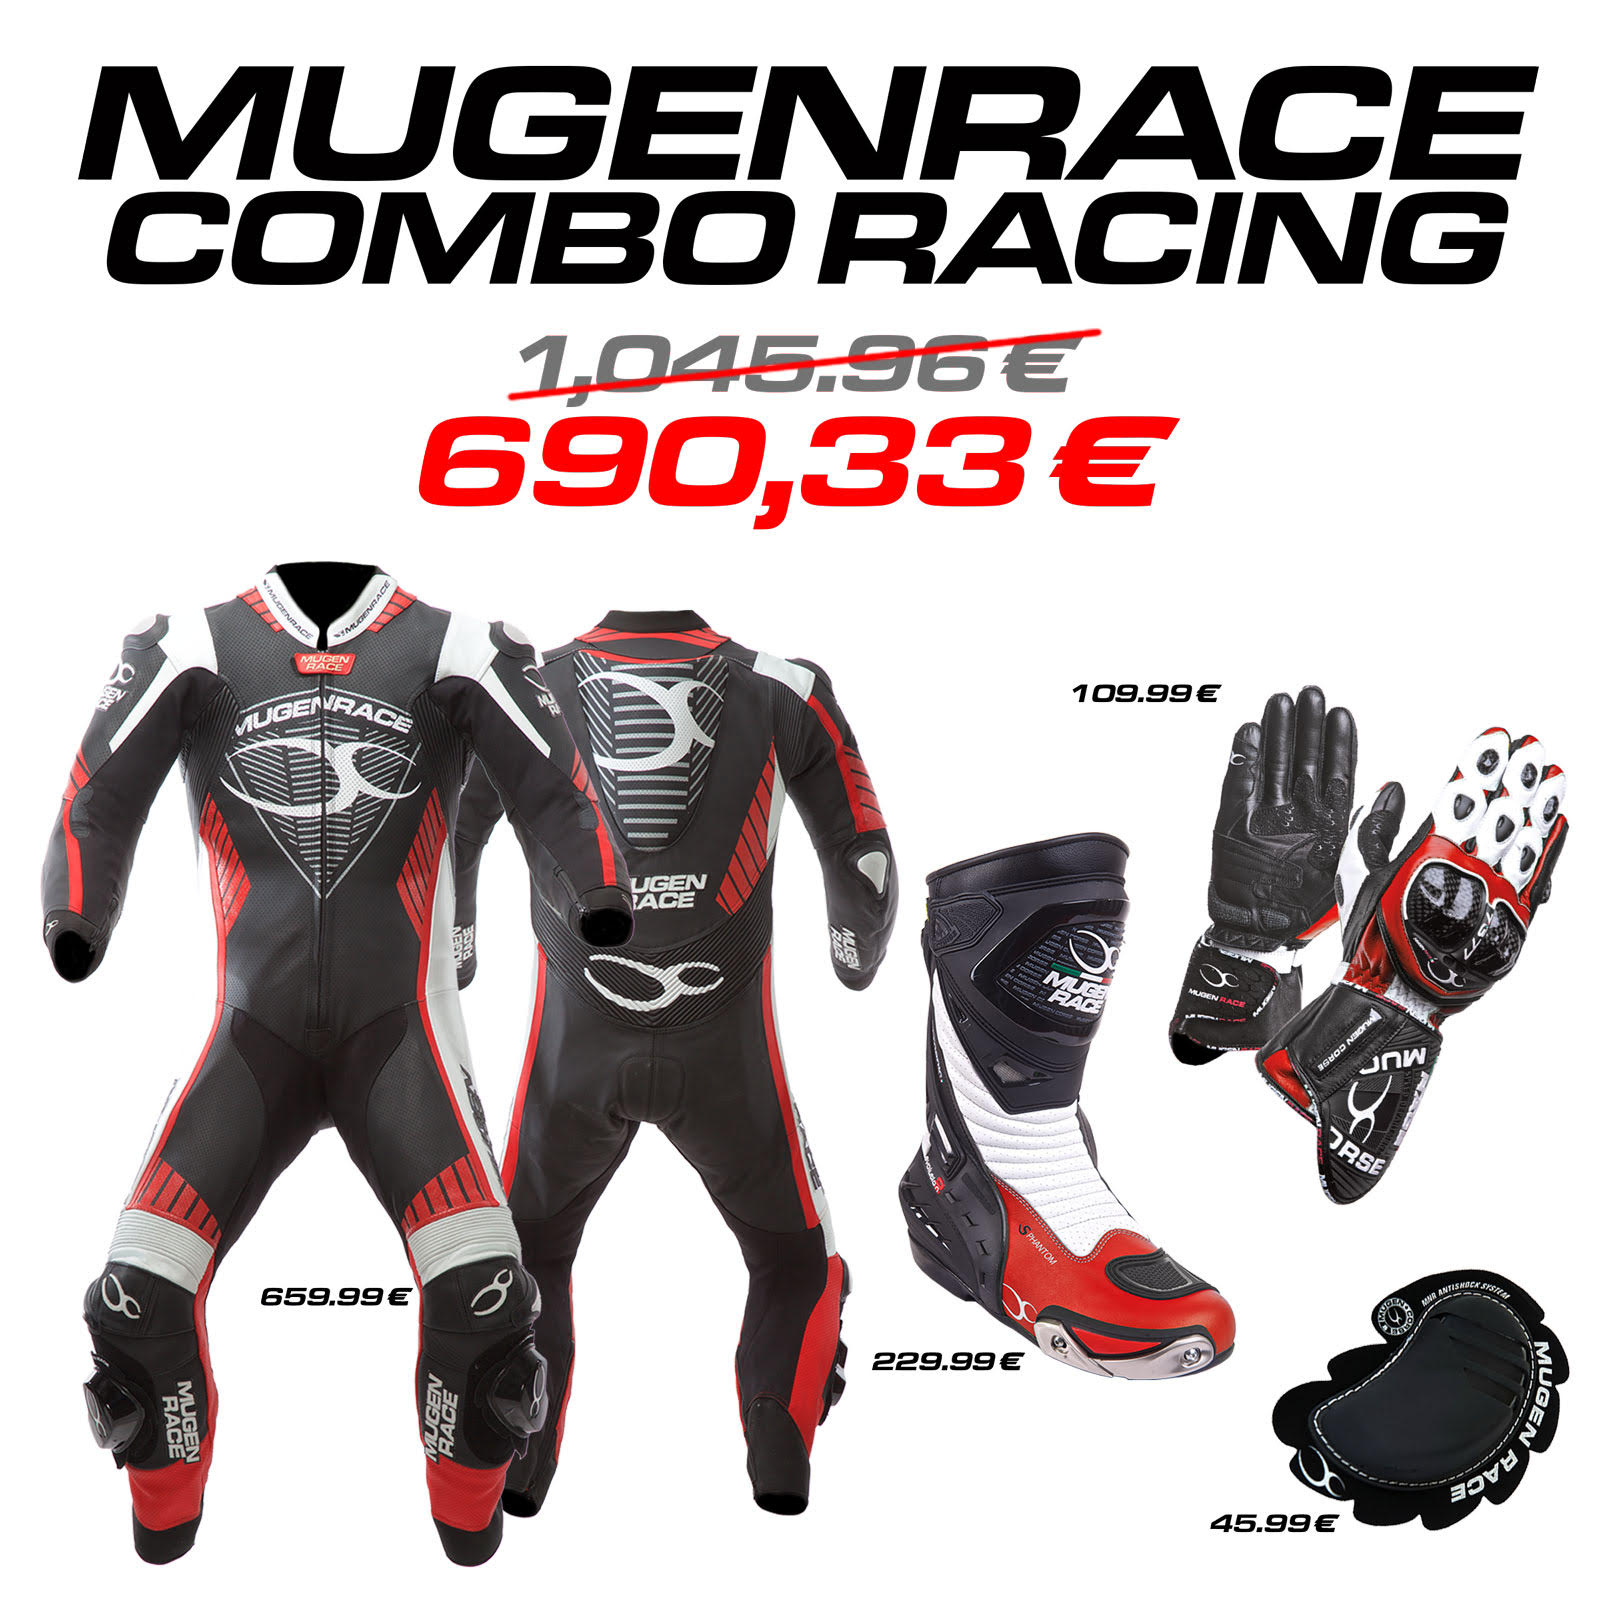 MUGENRACE combo Racing (man)